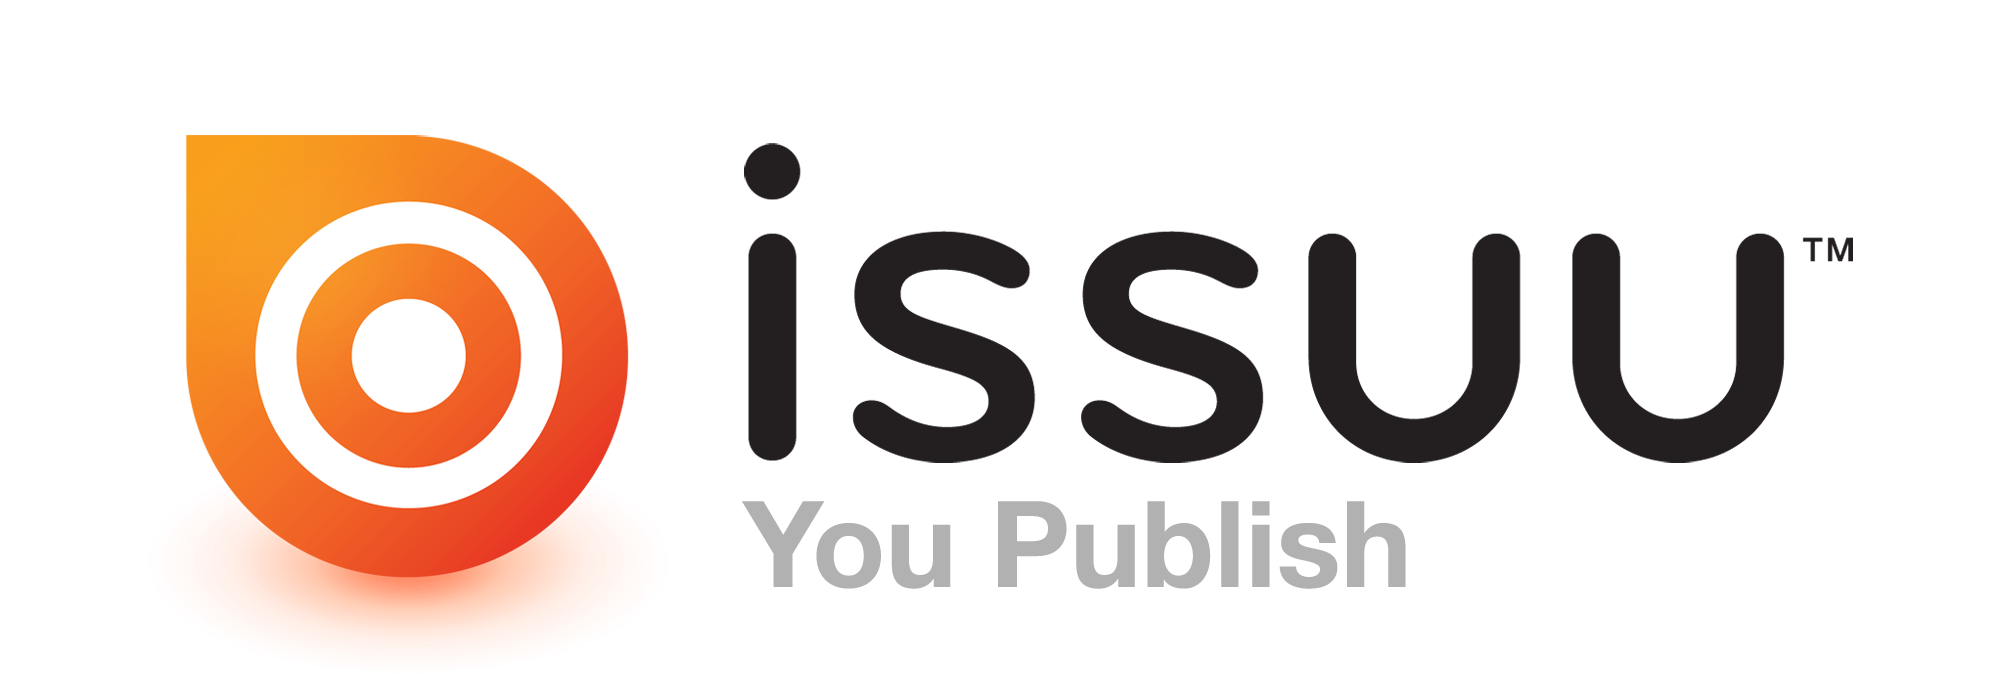 28-issuu